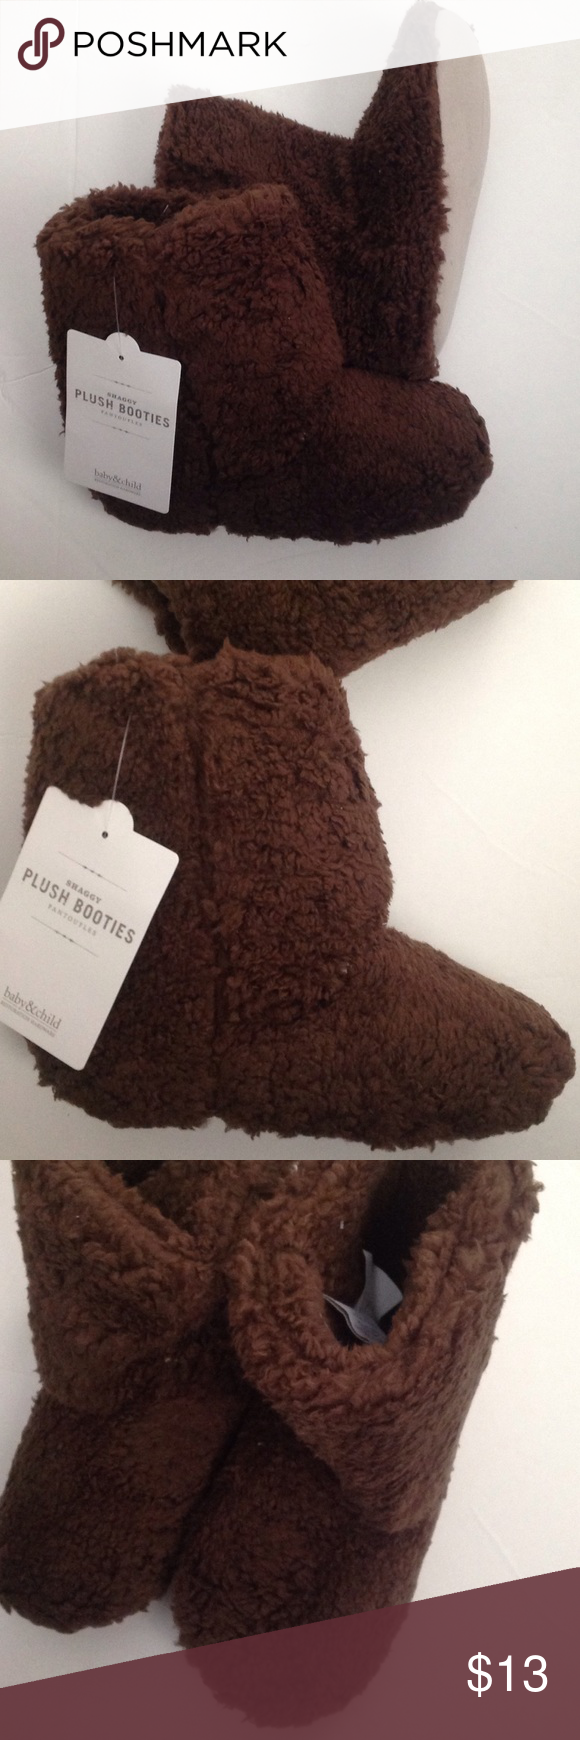 Shaggy Plush Booties Warm soft comfortable these are the words to express these slippers ready for the upcoming season get a pair now before there gone. Shoes Boots